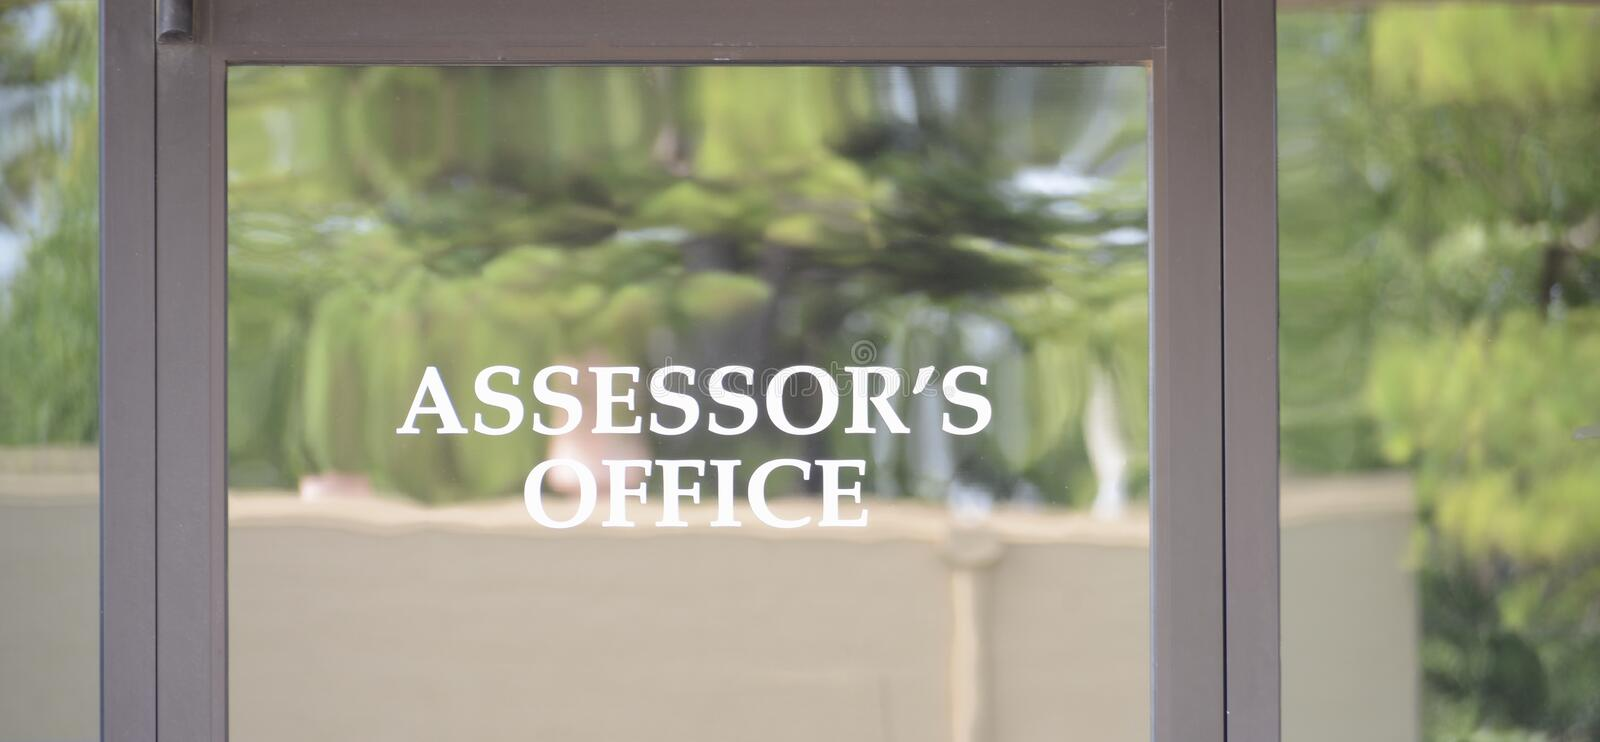 Tax Assessment Assessor`s Office royalty free stock photo